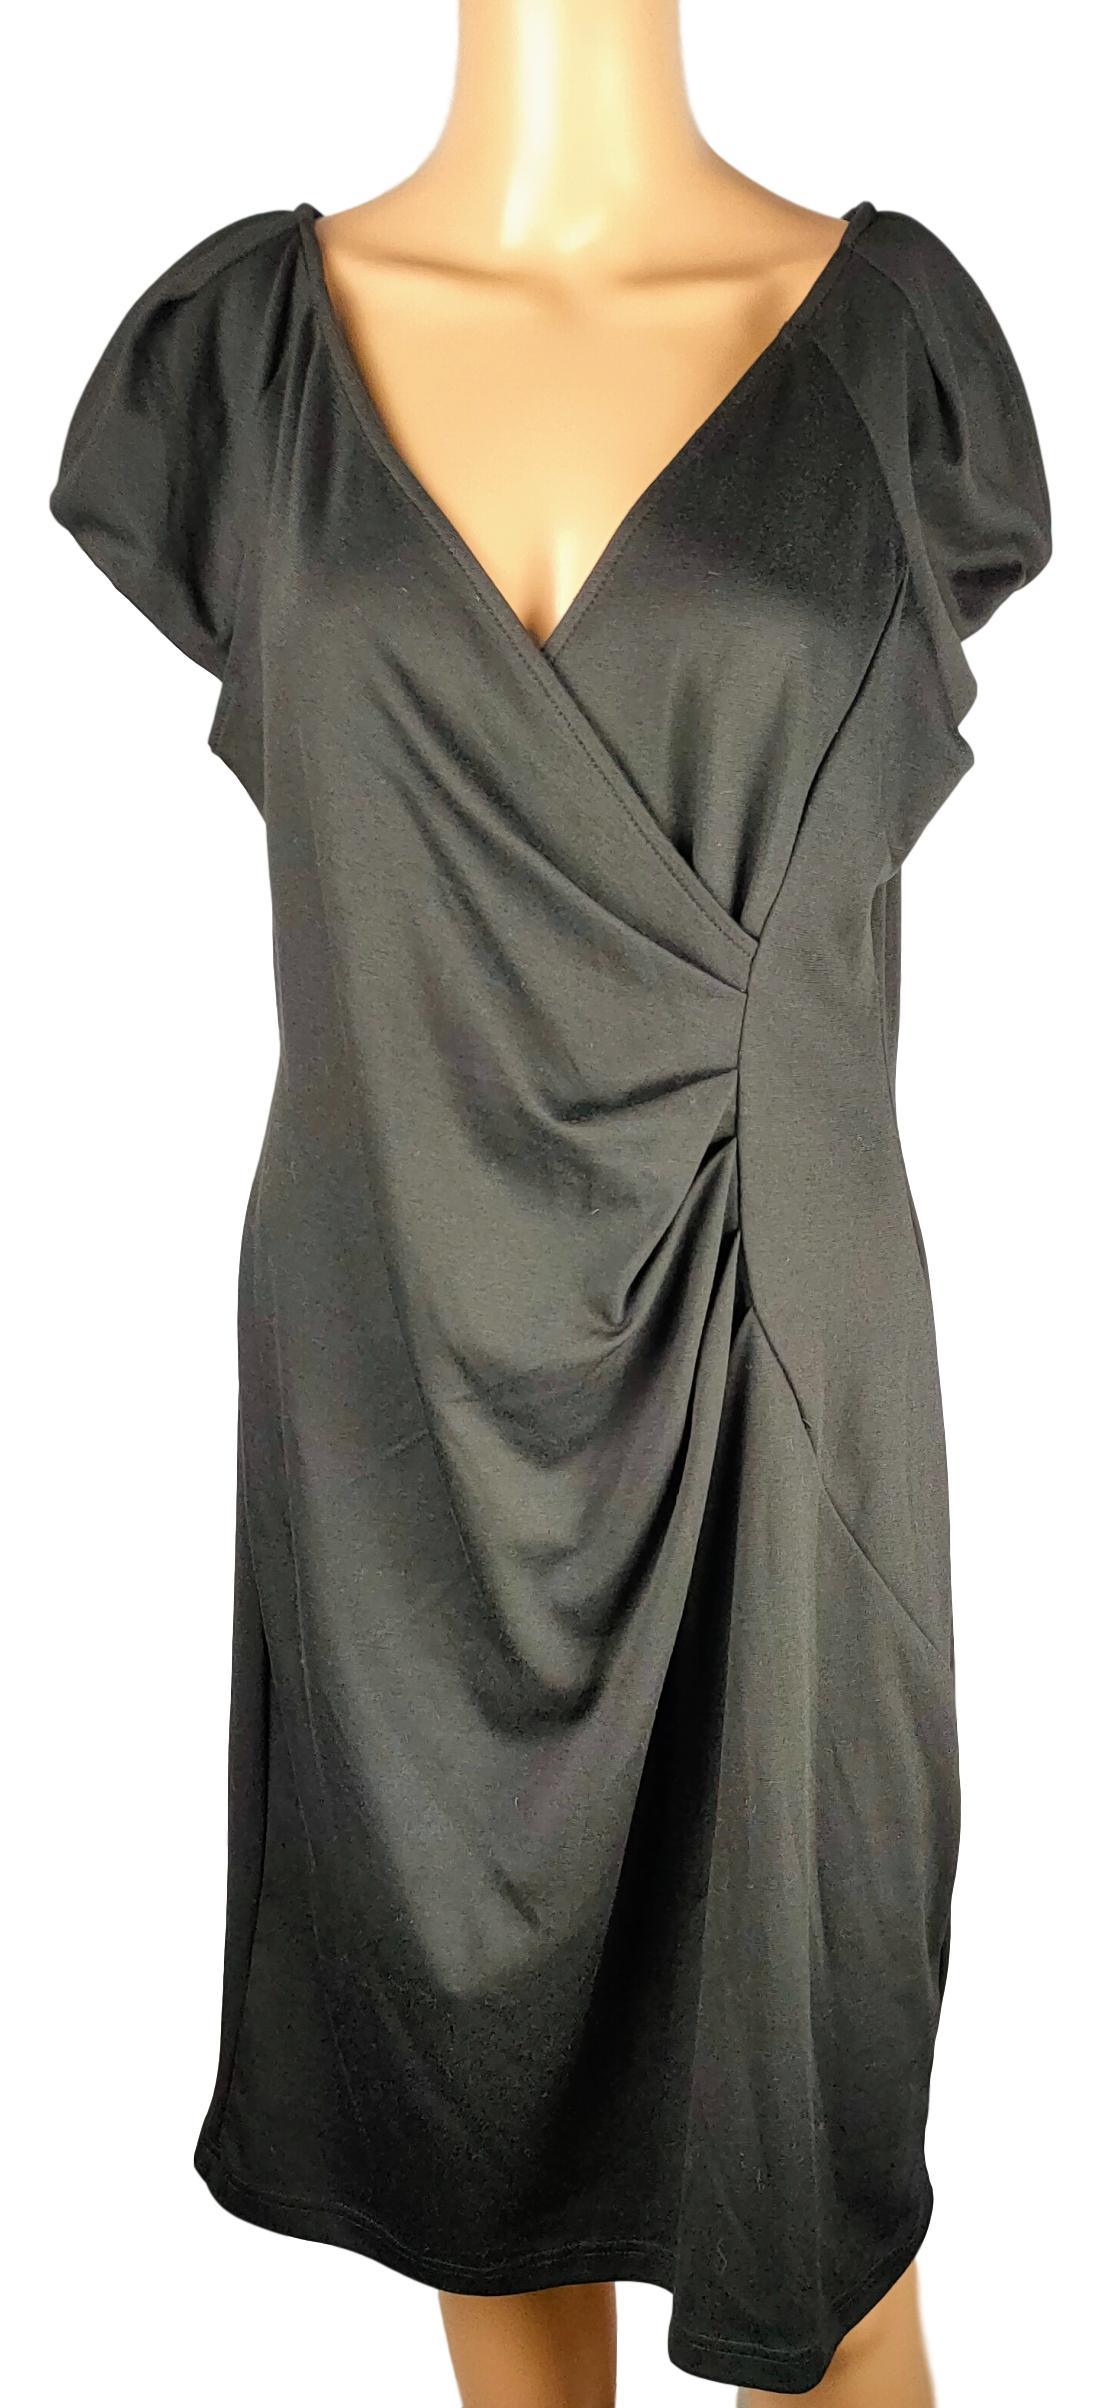 Robe Promod - Taille XL